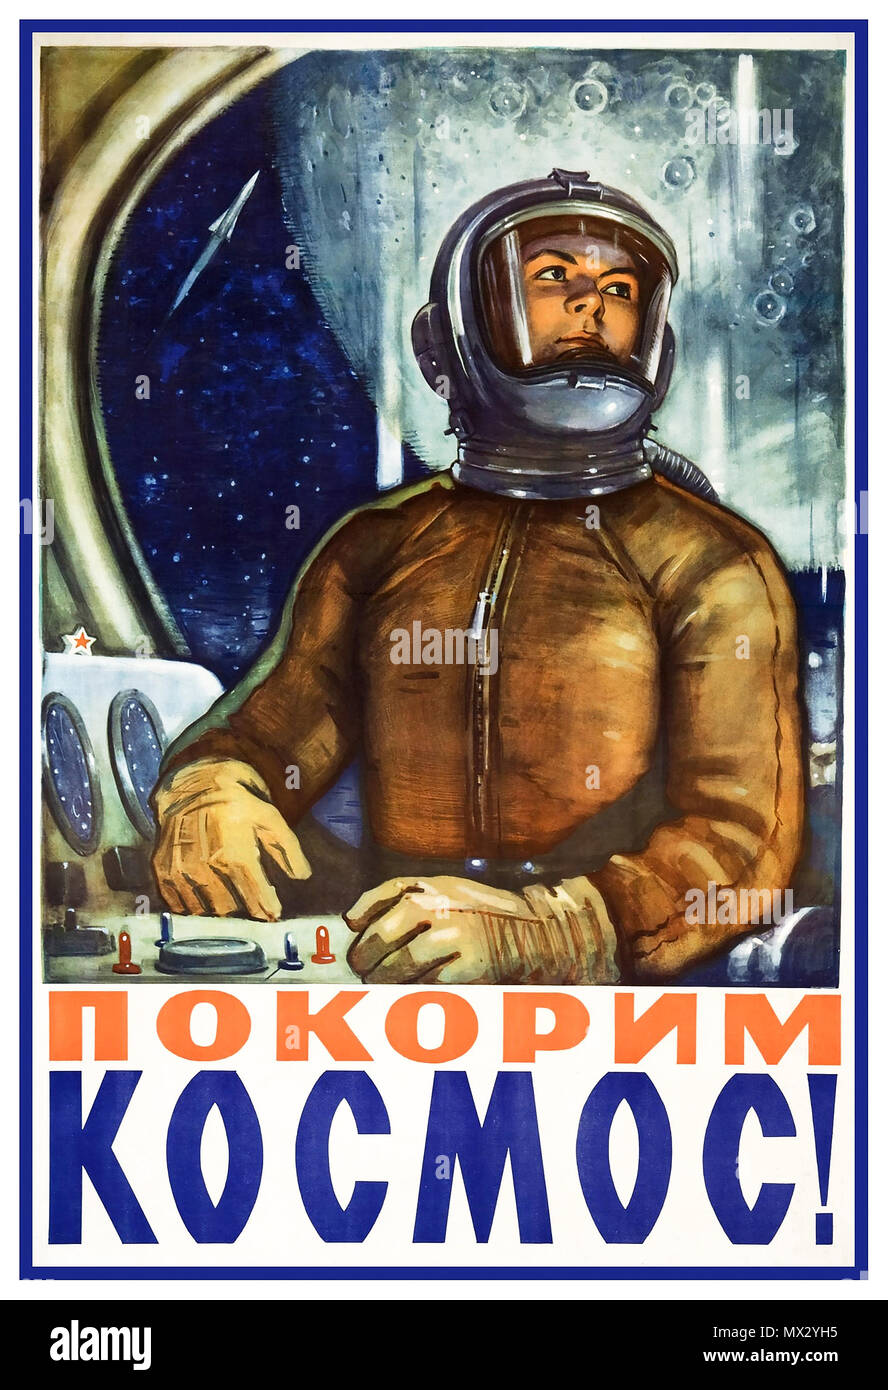 1960's Female Astronaut Cosmonaut Vintage Soviet Propaganda Poster USSR space exploration poster from 1960's featuring a female astronaut...'Conquering Space!' - Stock Image